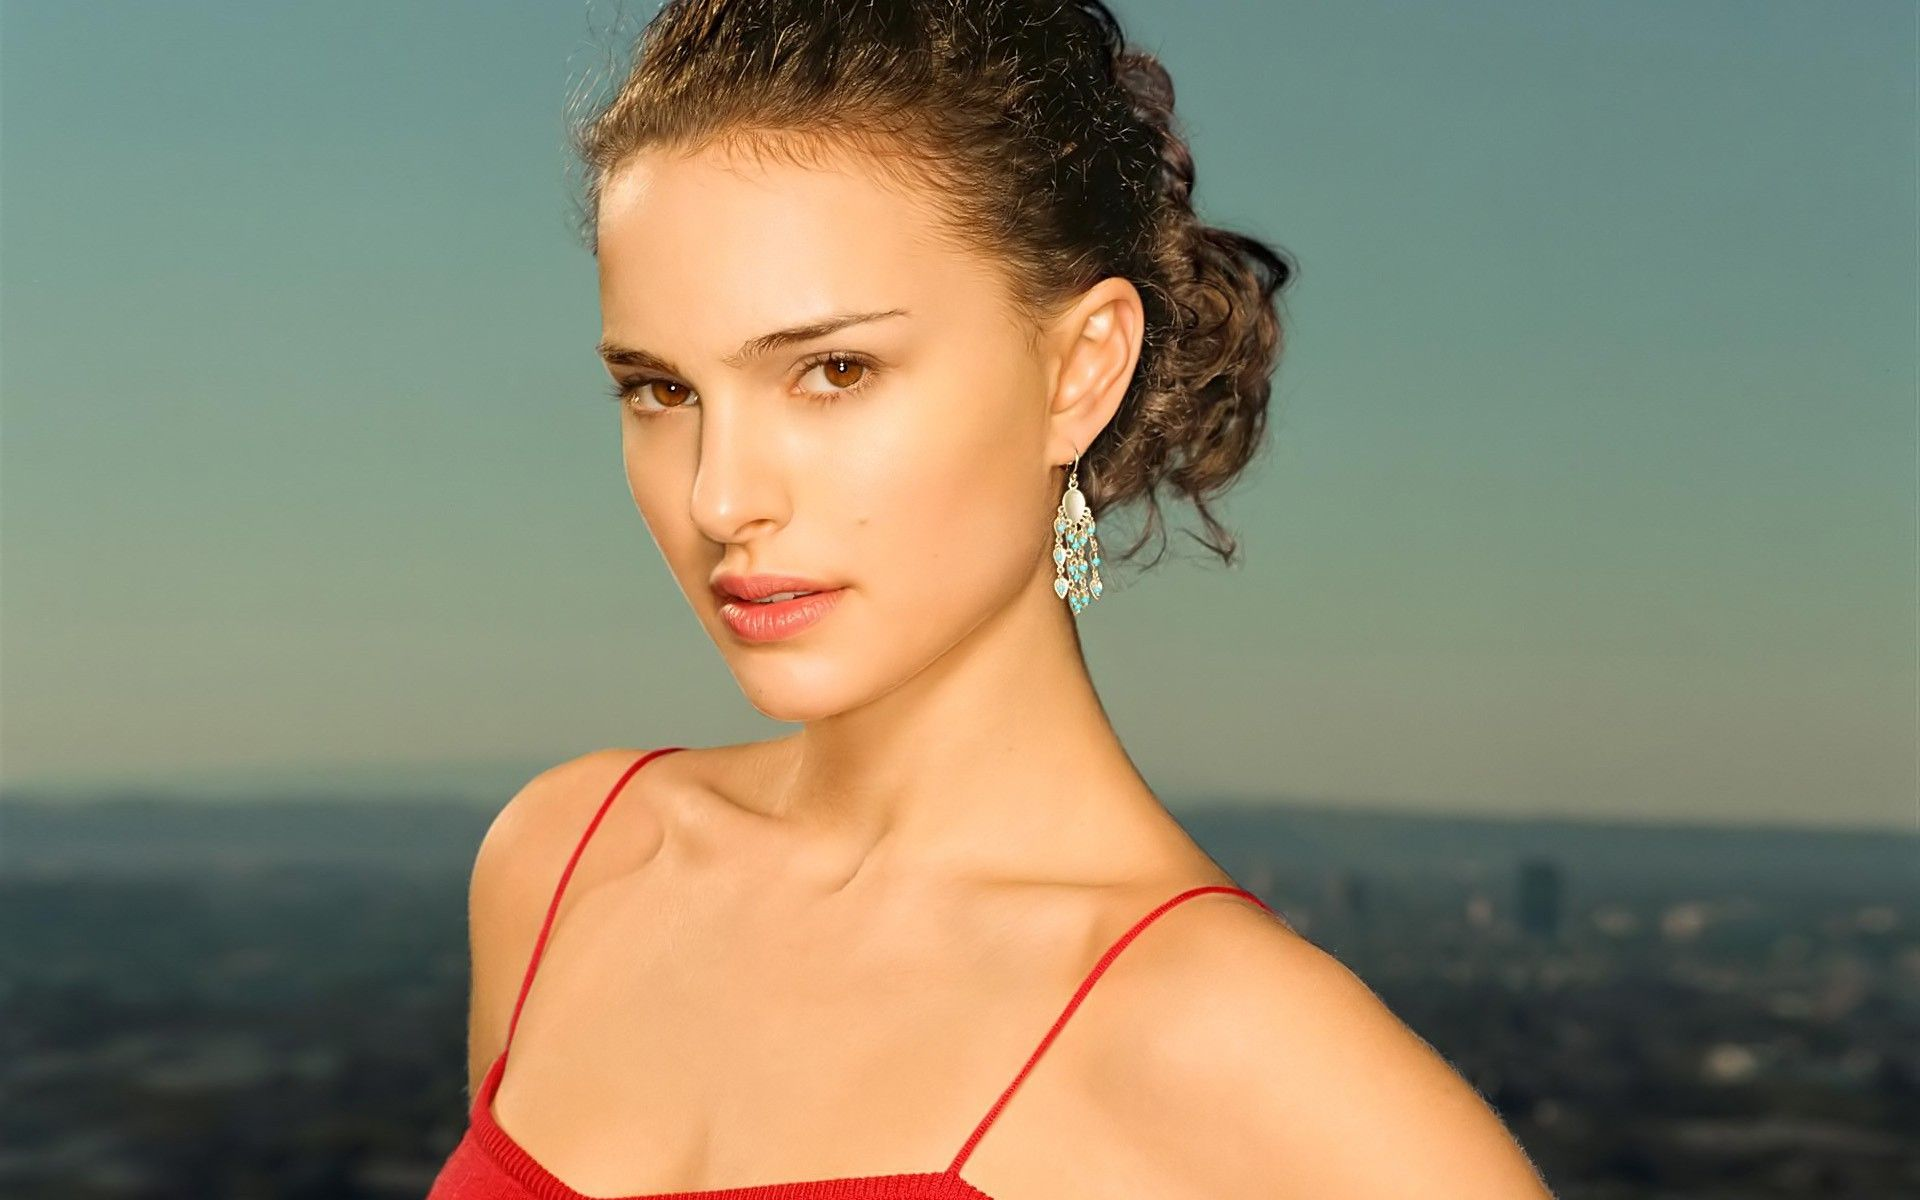 ICloud Natalie Portman nudes (75 photos), Topless, Cleavage, Boobs, swimsuit 2006